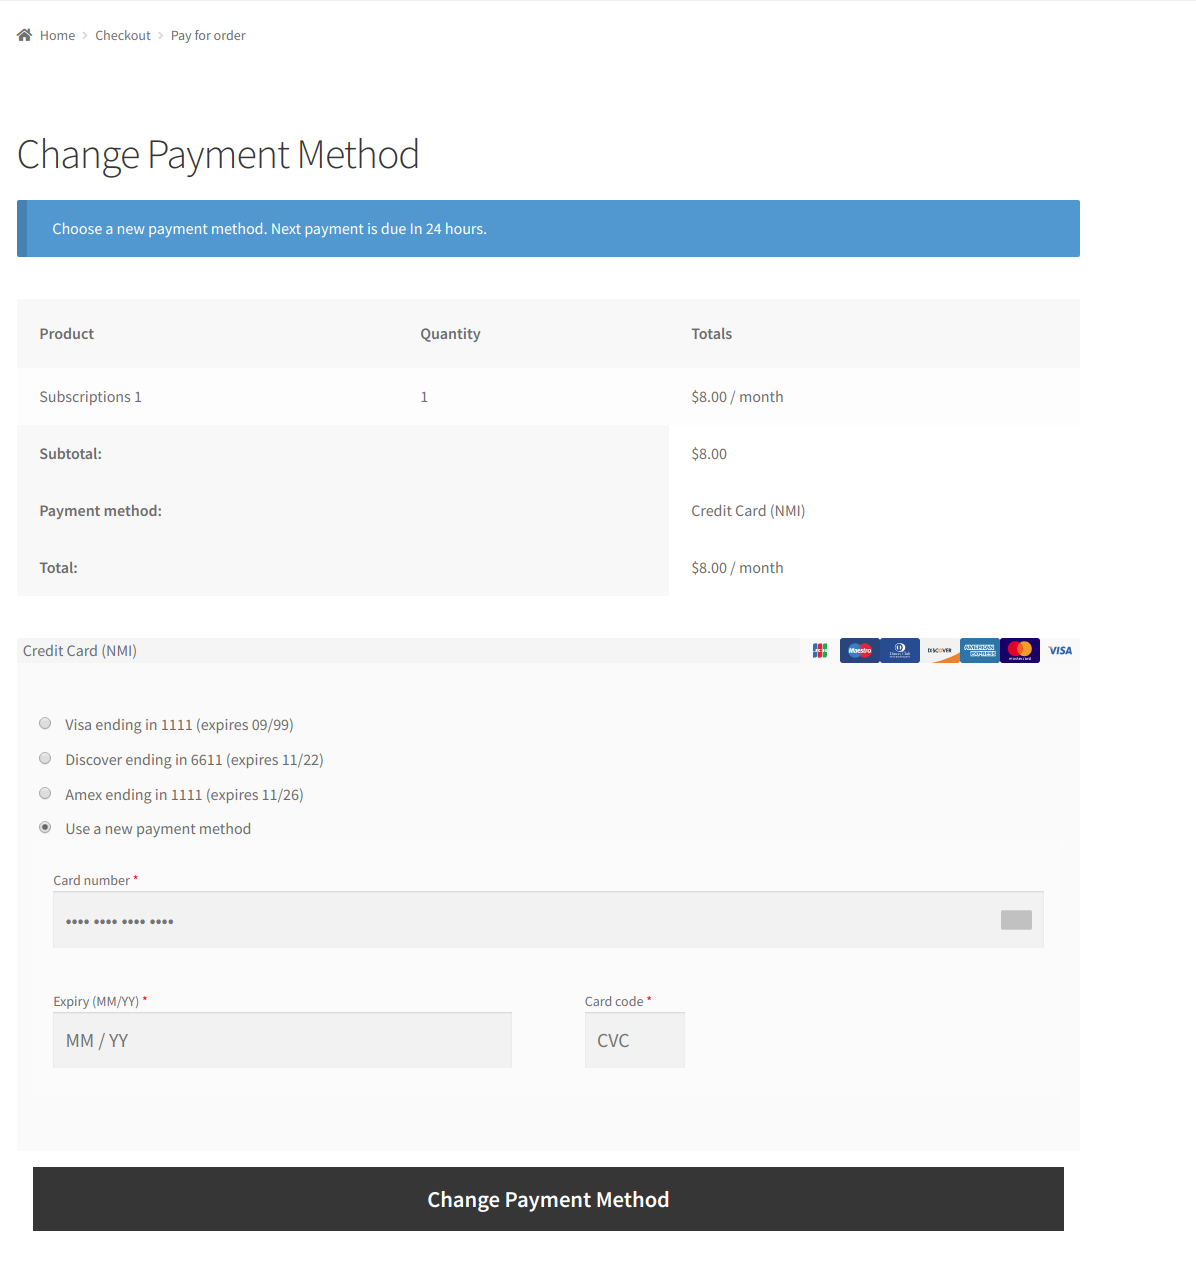 Change Payment Methods for Subscriptions